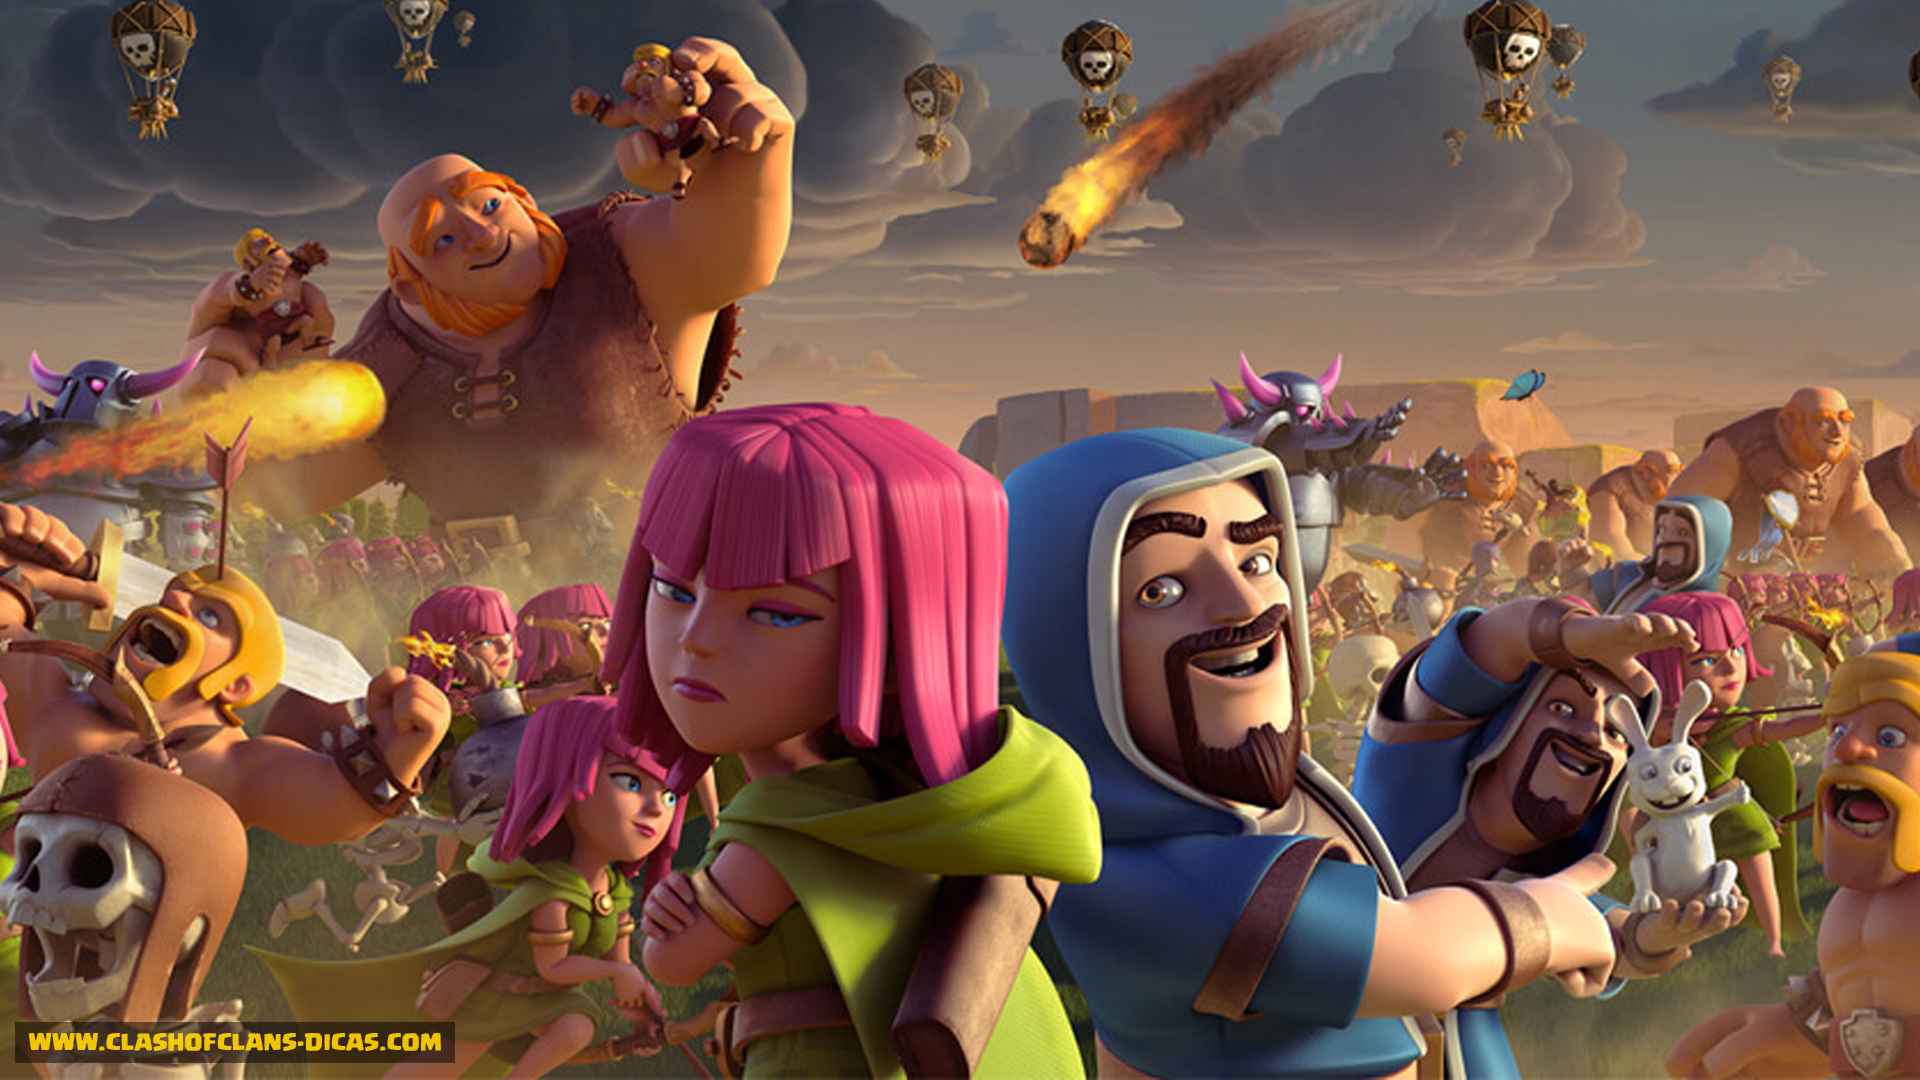 Célèbre Clash Of Clans Images Wallpapers (43 Wallpapers) – Adorable Wallpapers IP15